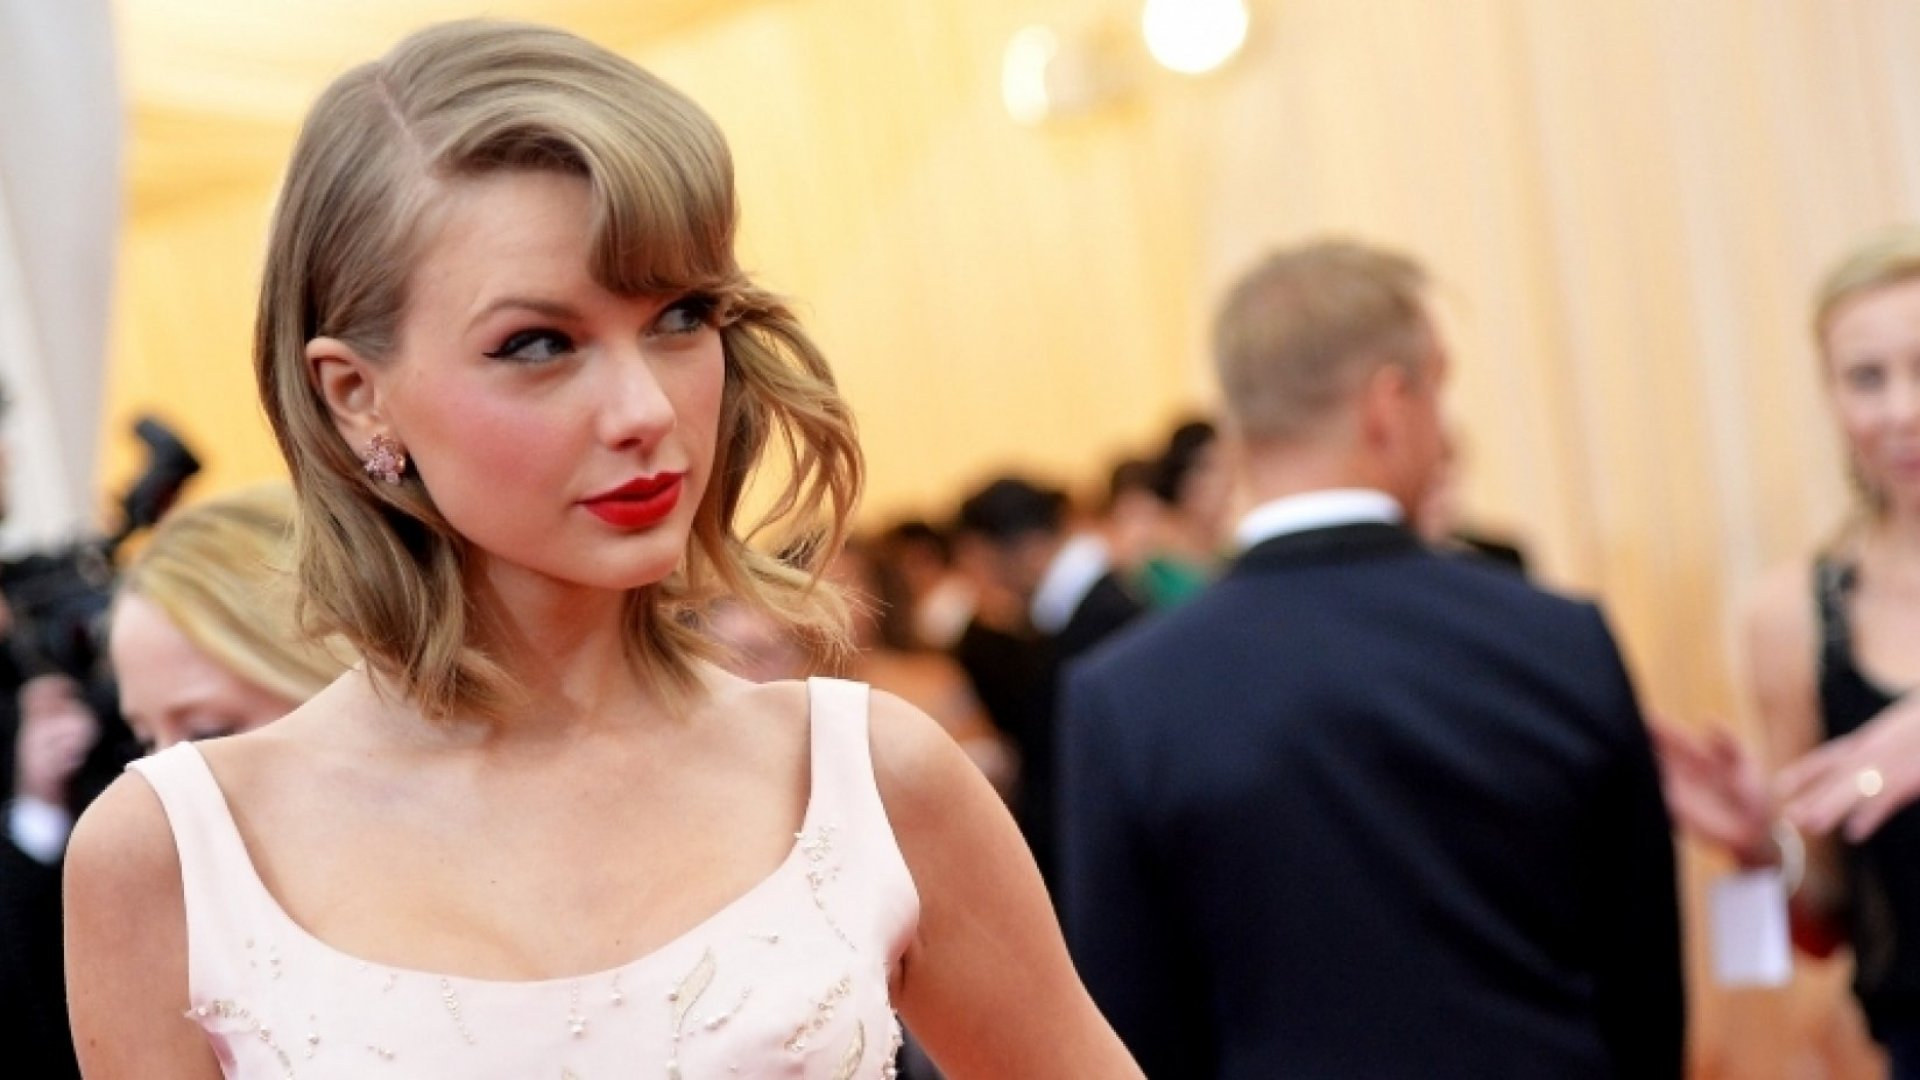 How to Manage Your Career Like Taylor Swift